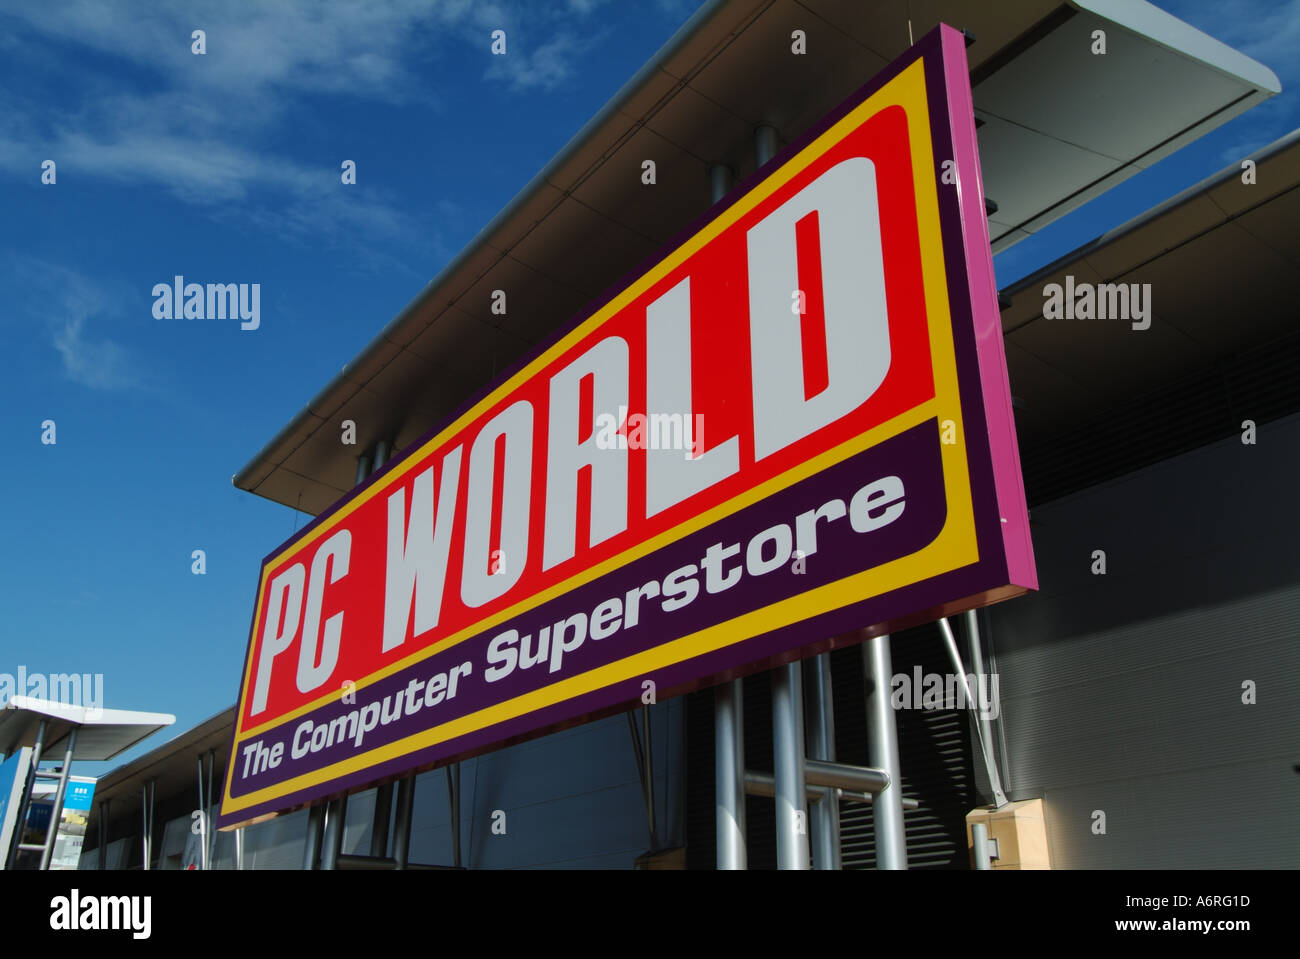 PC World in Lakeside Retail Park. Welcome to the contact page for PC World Lakeside Retail Park. Please see below for opening and closing times, telephone number and a local map.